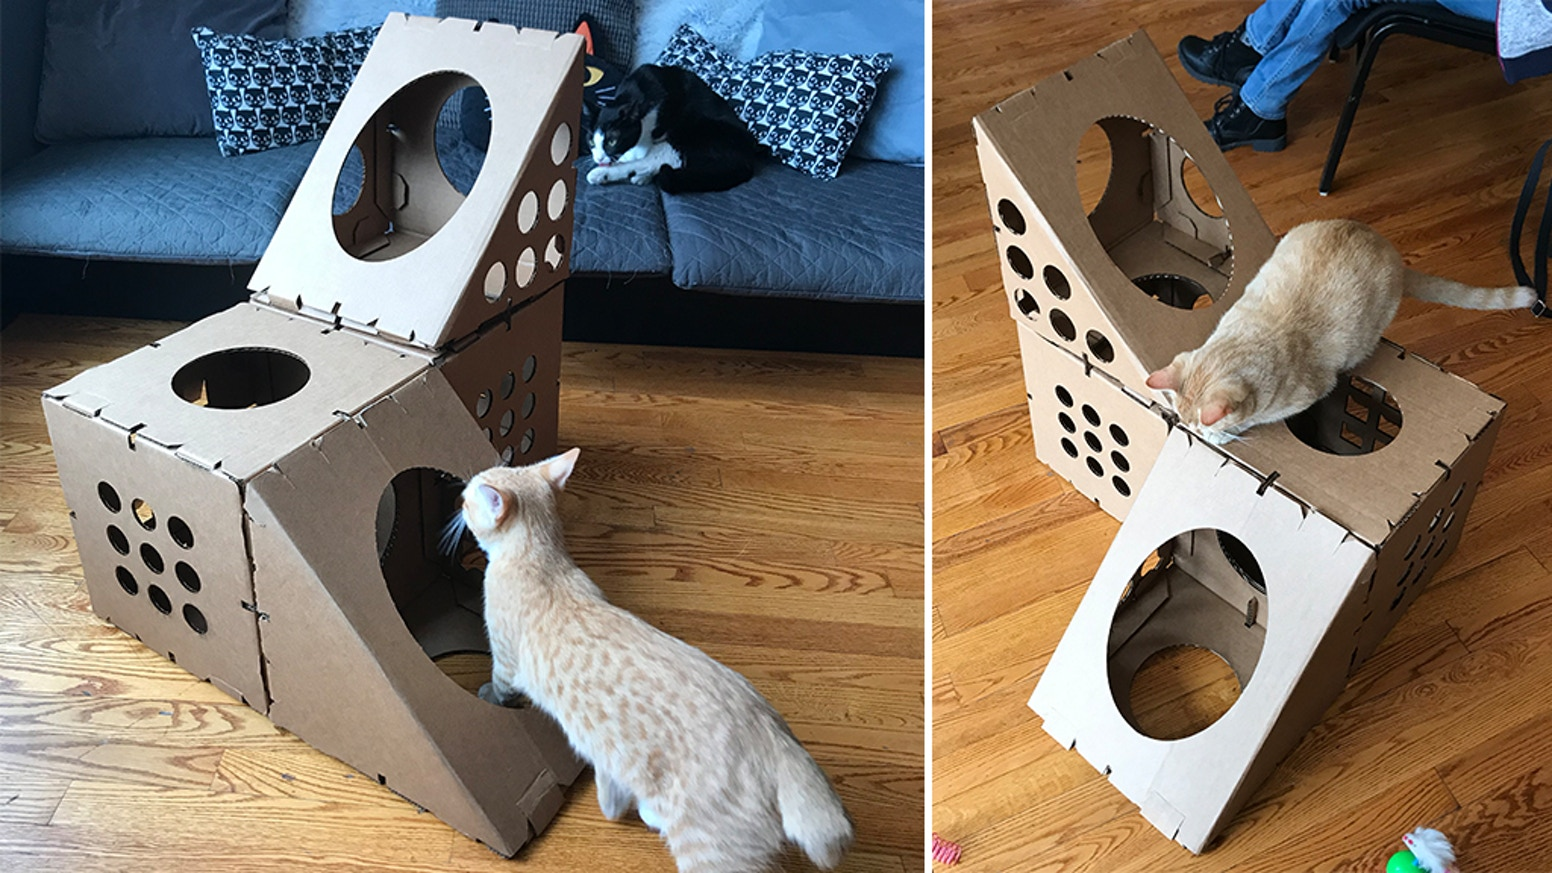 Cat boxes are designed to be PAWSOME for your kitties, and to help support shelters in Chicago keep doing their important work